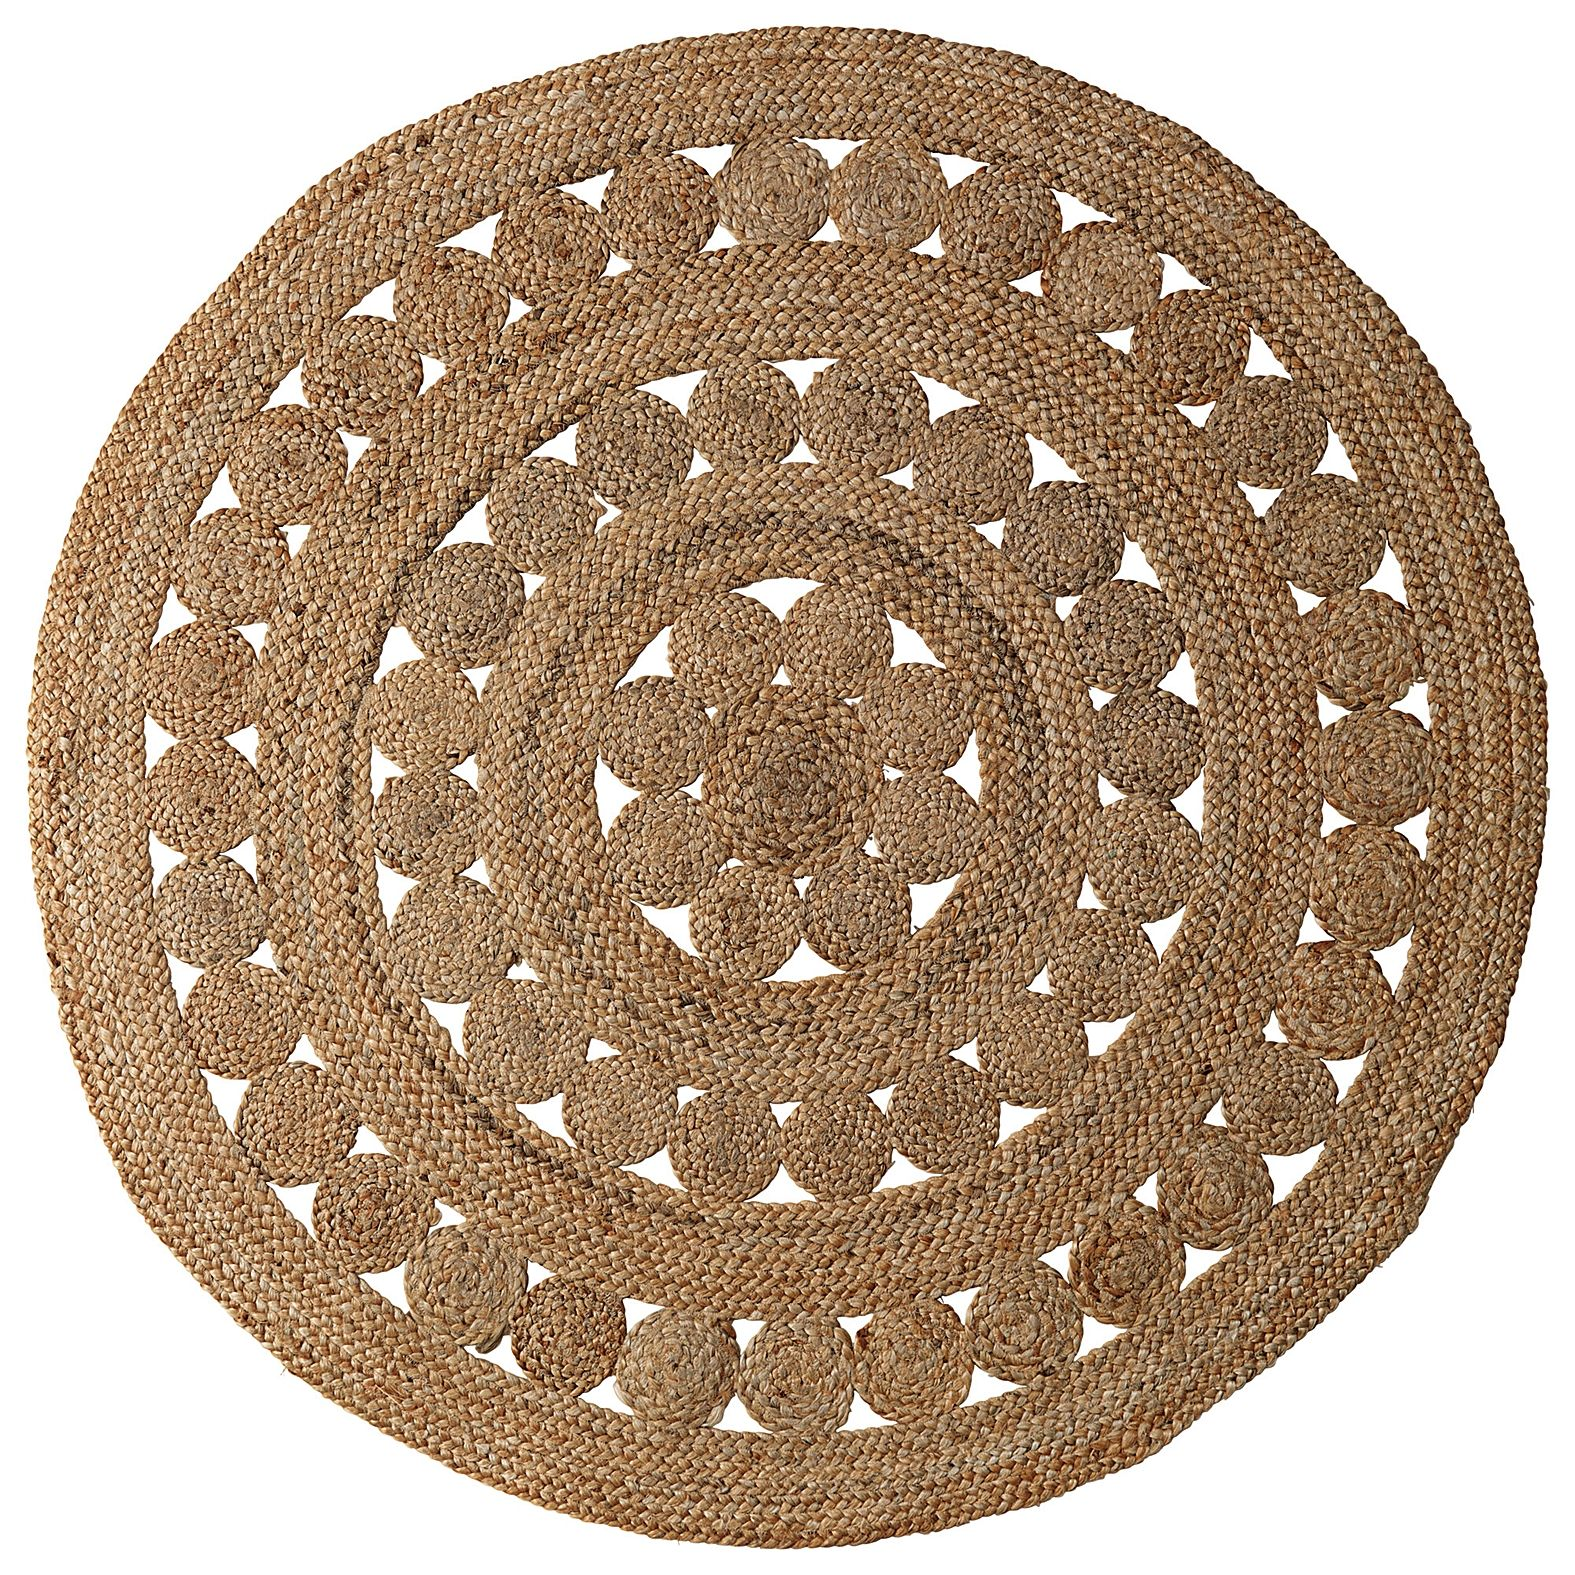 439 X 639 Braided Jute Rug Rugs For The Home T Rugs Jute